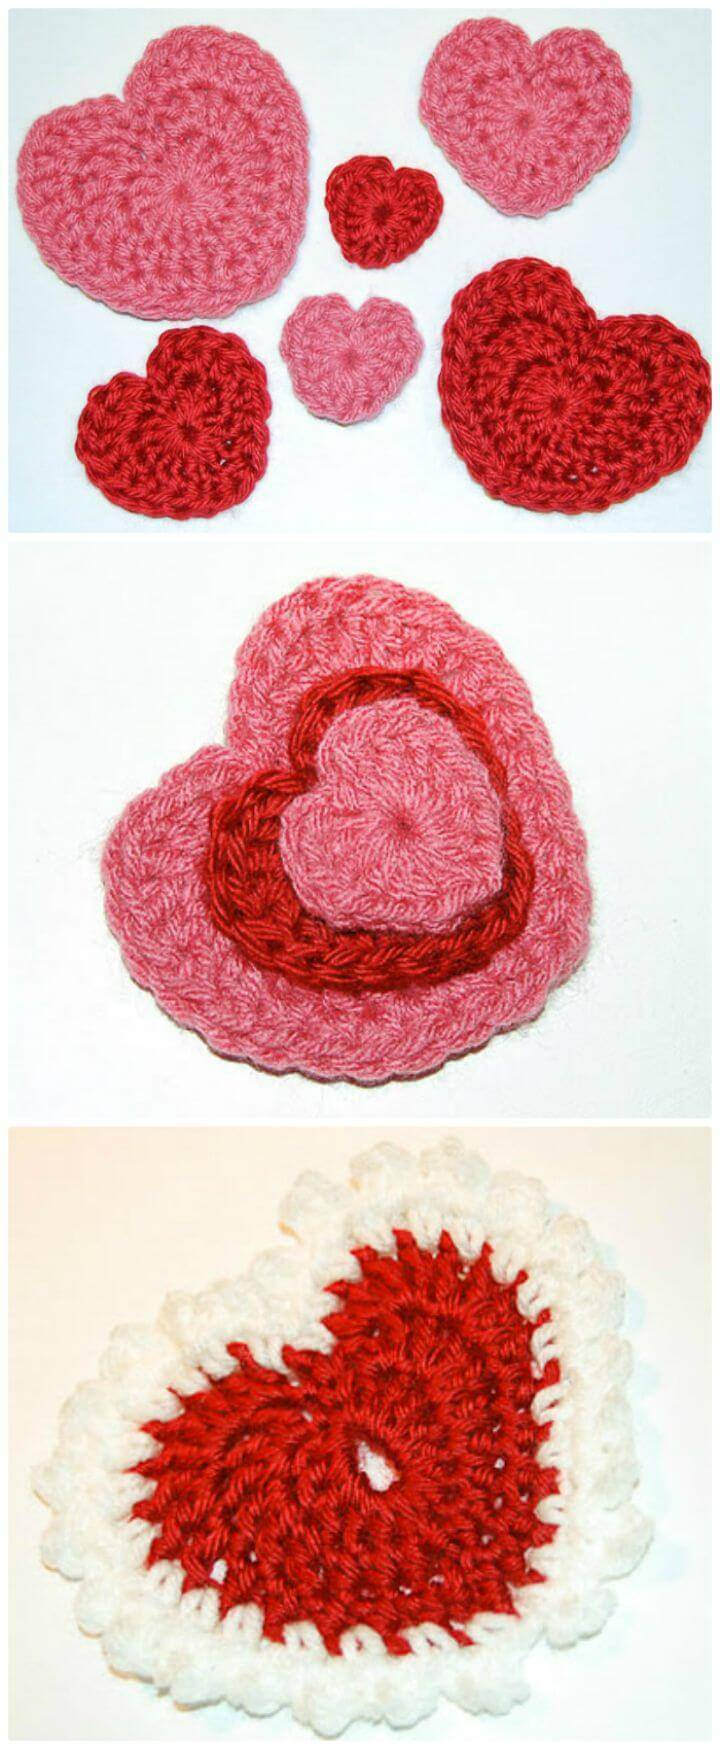 How To Crochet Valentine's Day Heart - Free Valentine Day Pattern